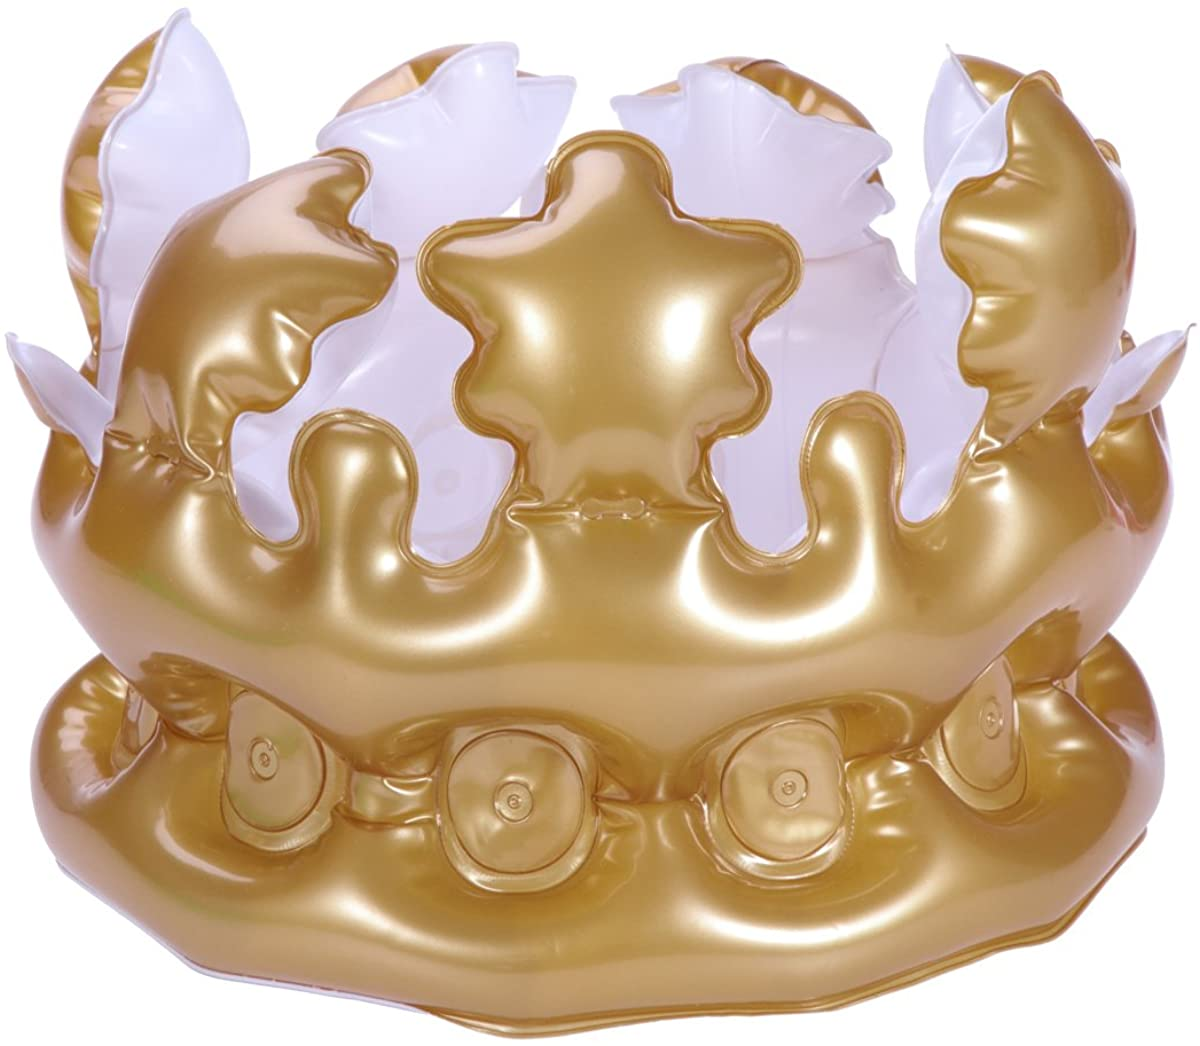 NUOLUX Inflatable Crown Inflatable Blow up Toy Party Favor Kids Gift Gold